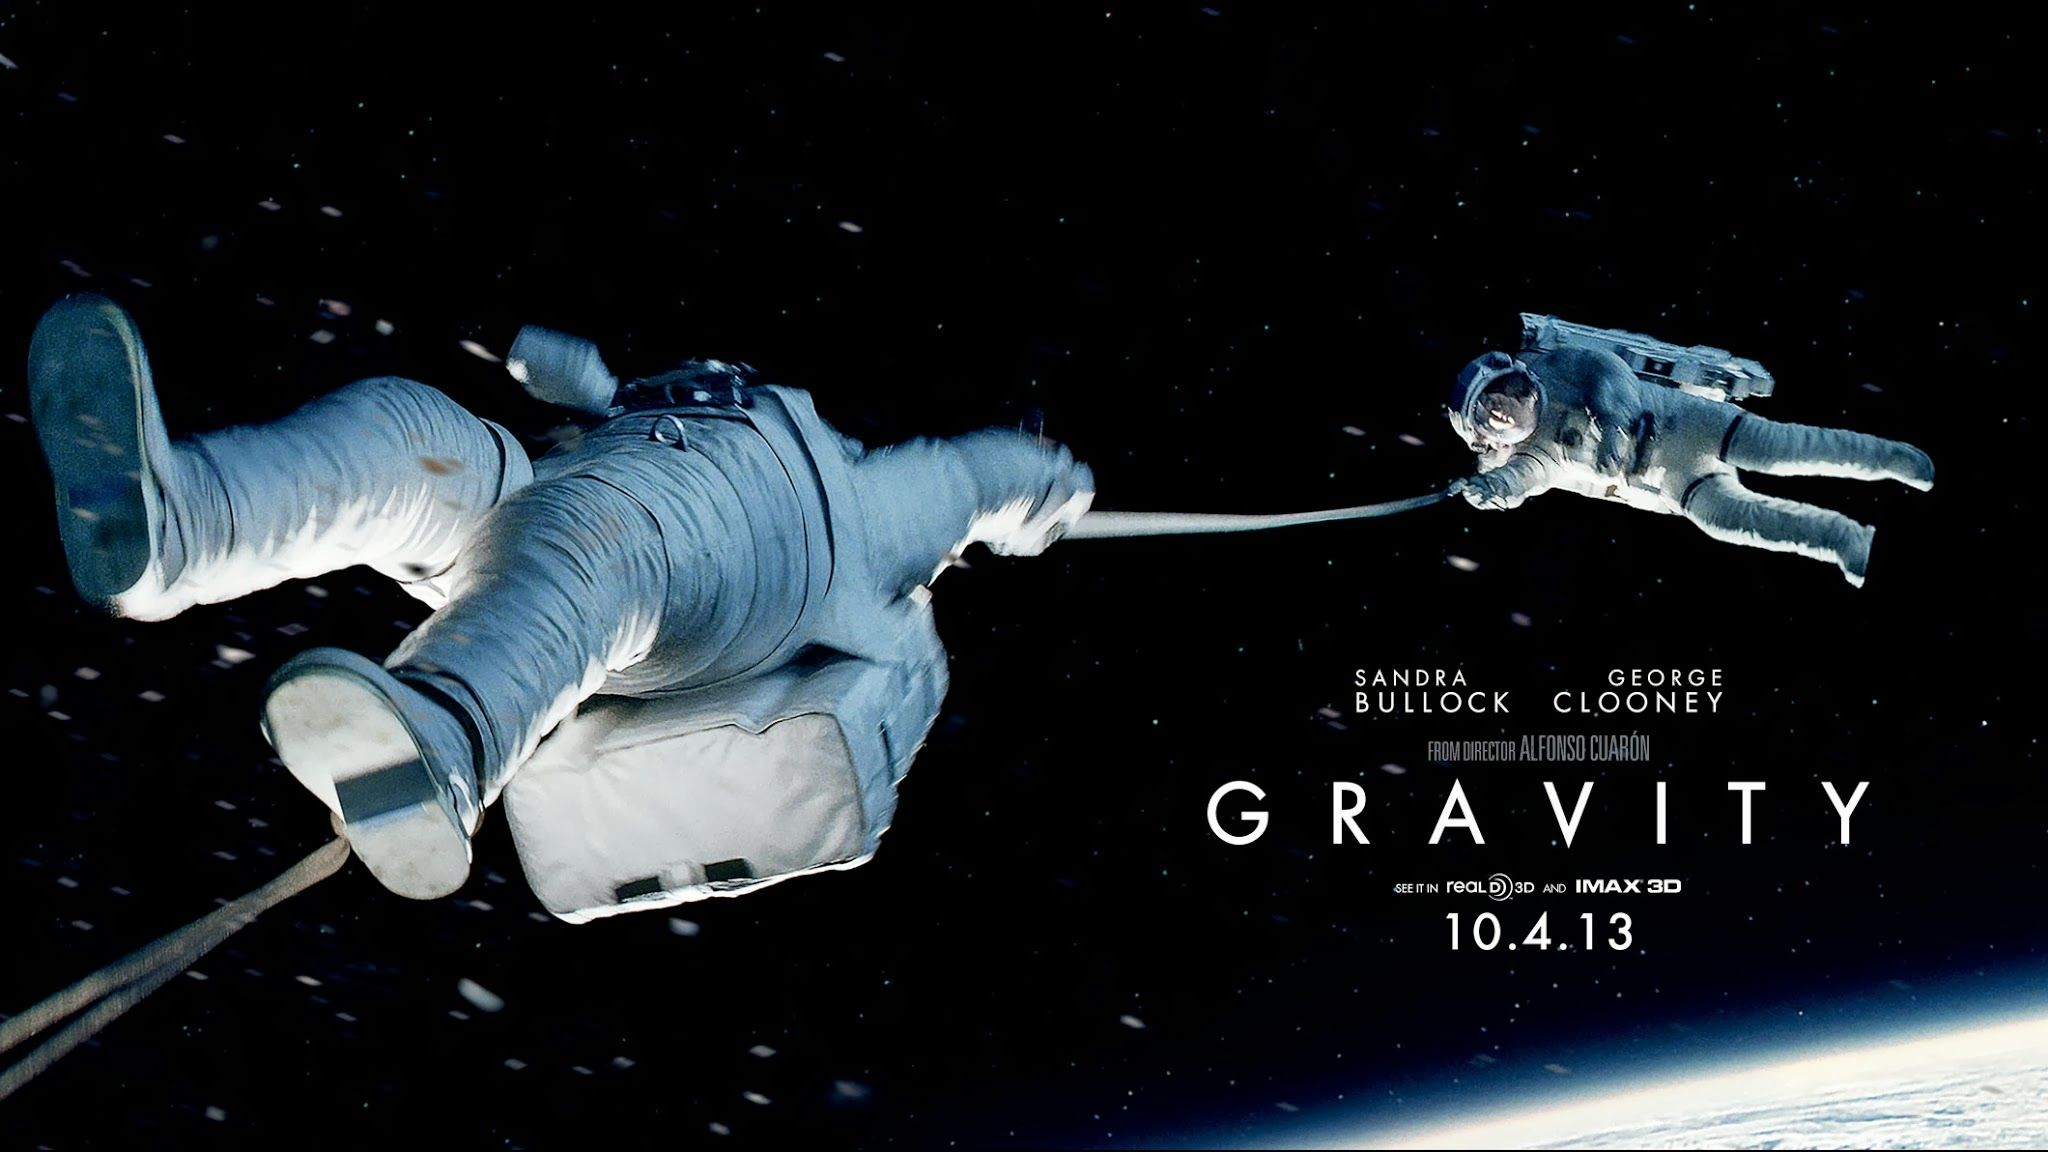 Gravity (With images) | Gravity movie, Gravity, Good movies